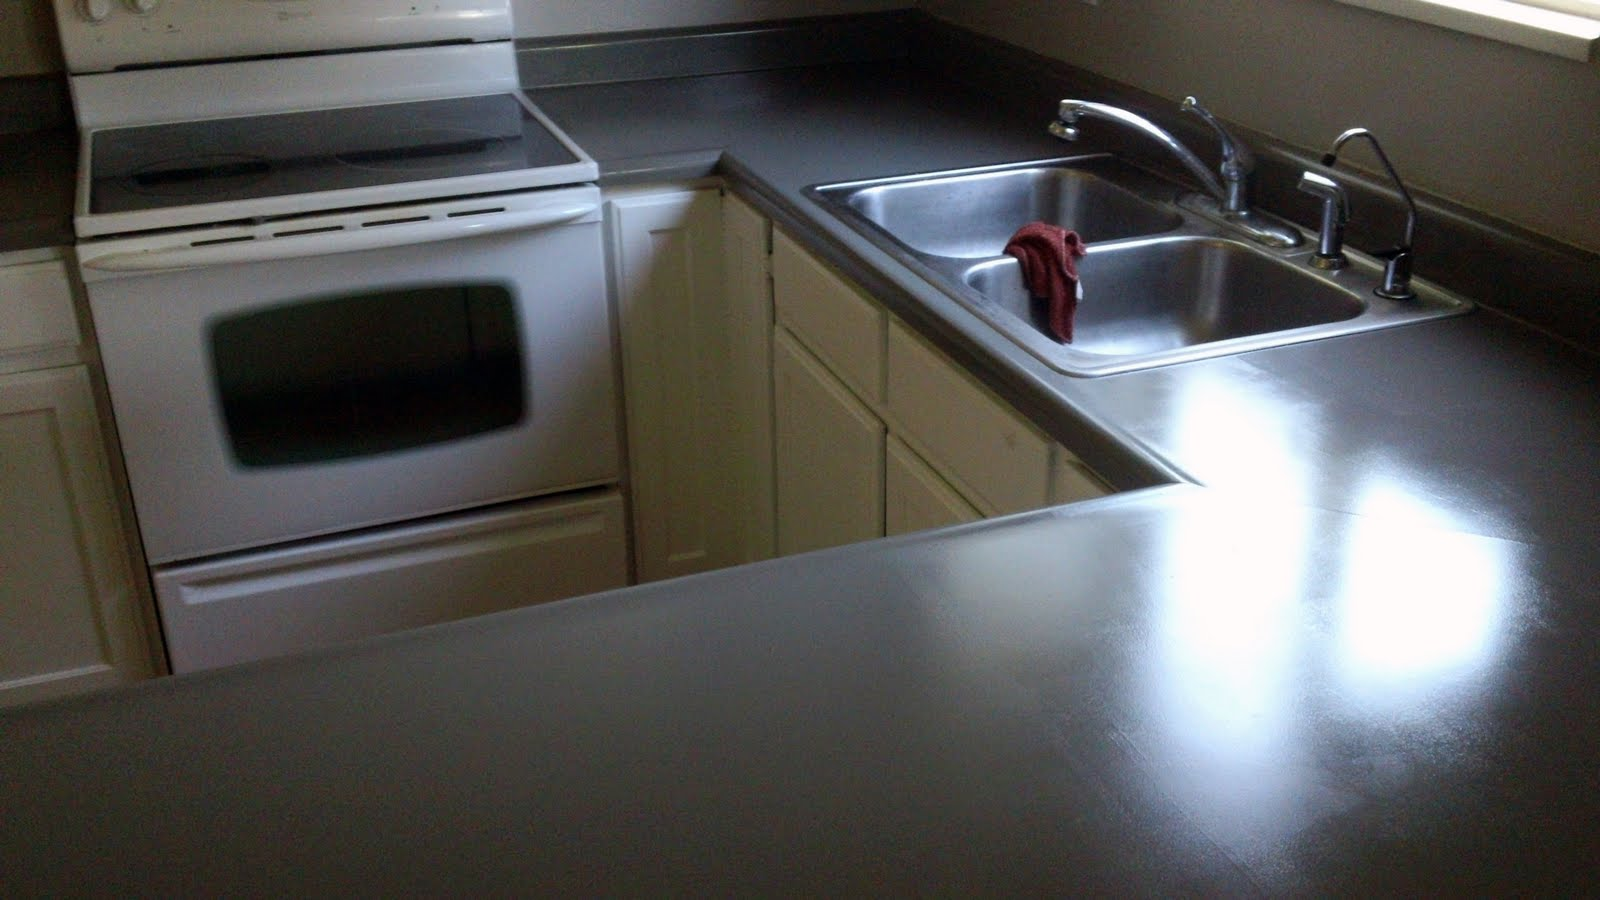 Rustoleum Countertop Paint Directions : Painted Countertops. - Chris Loves Julia